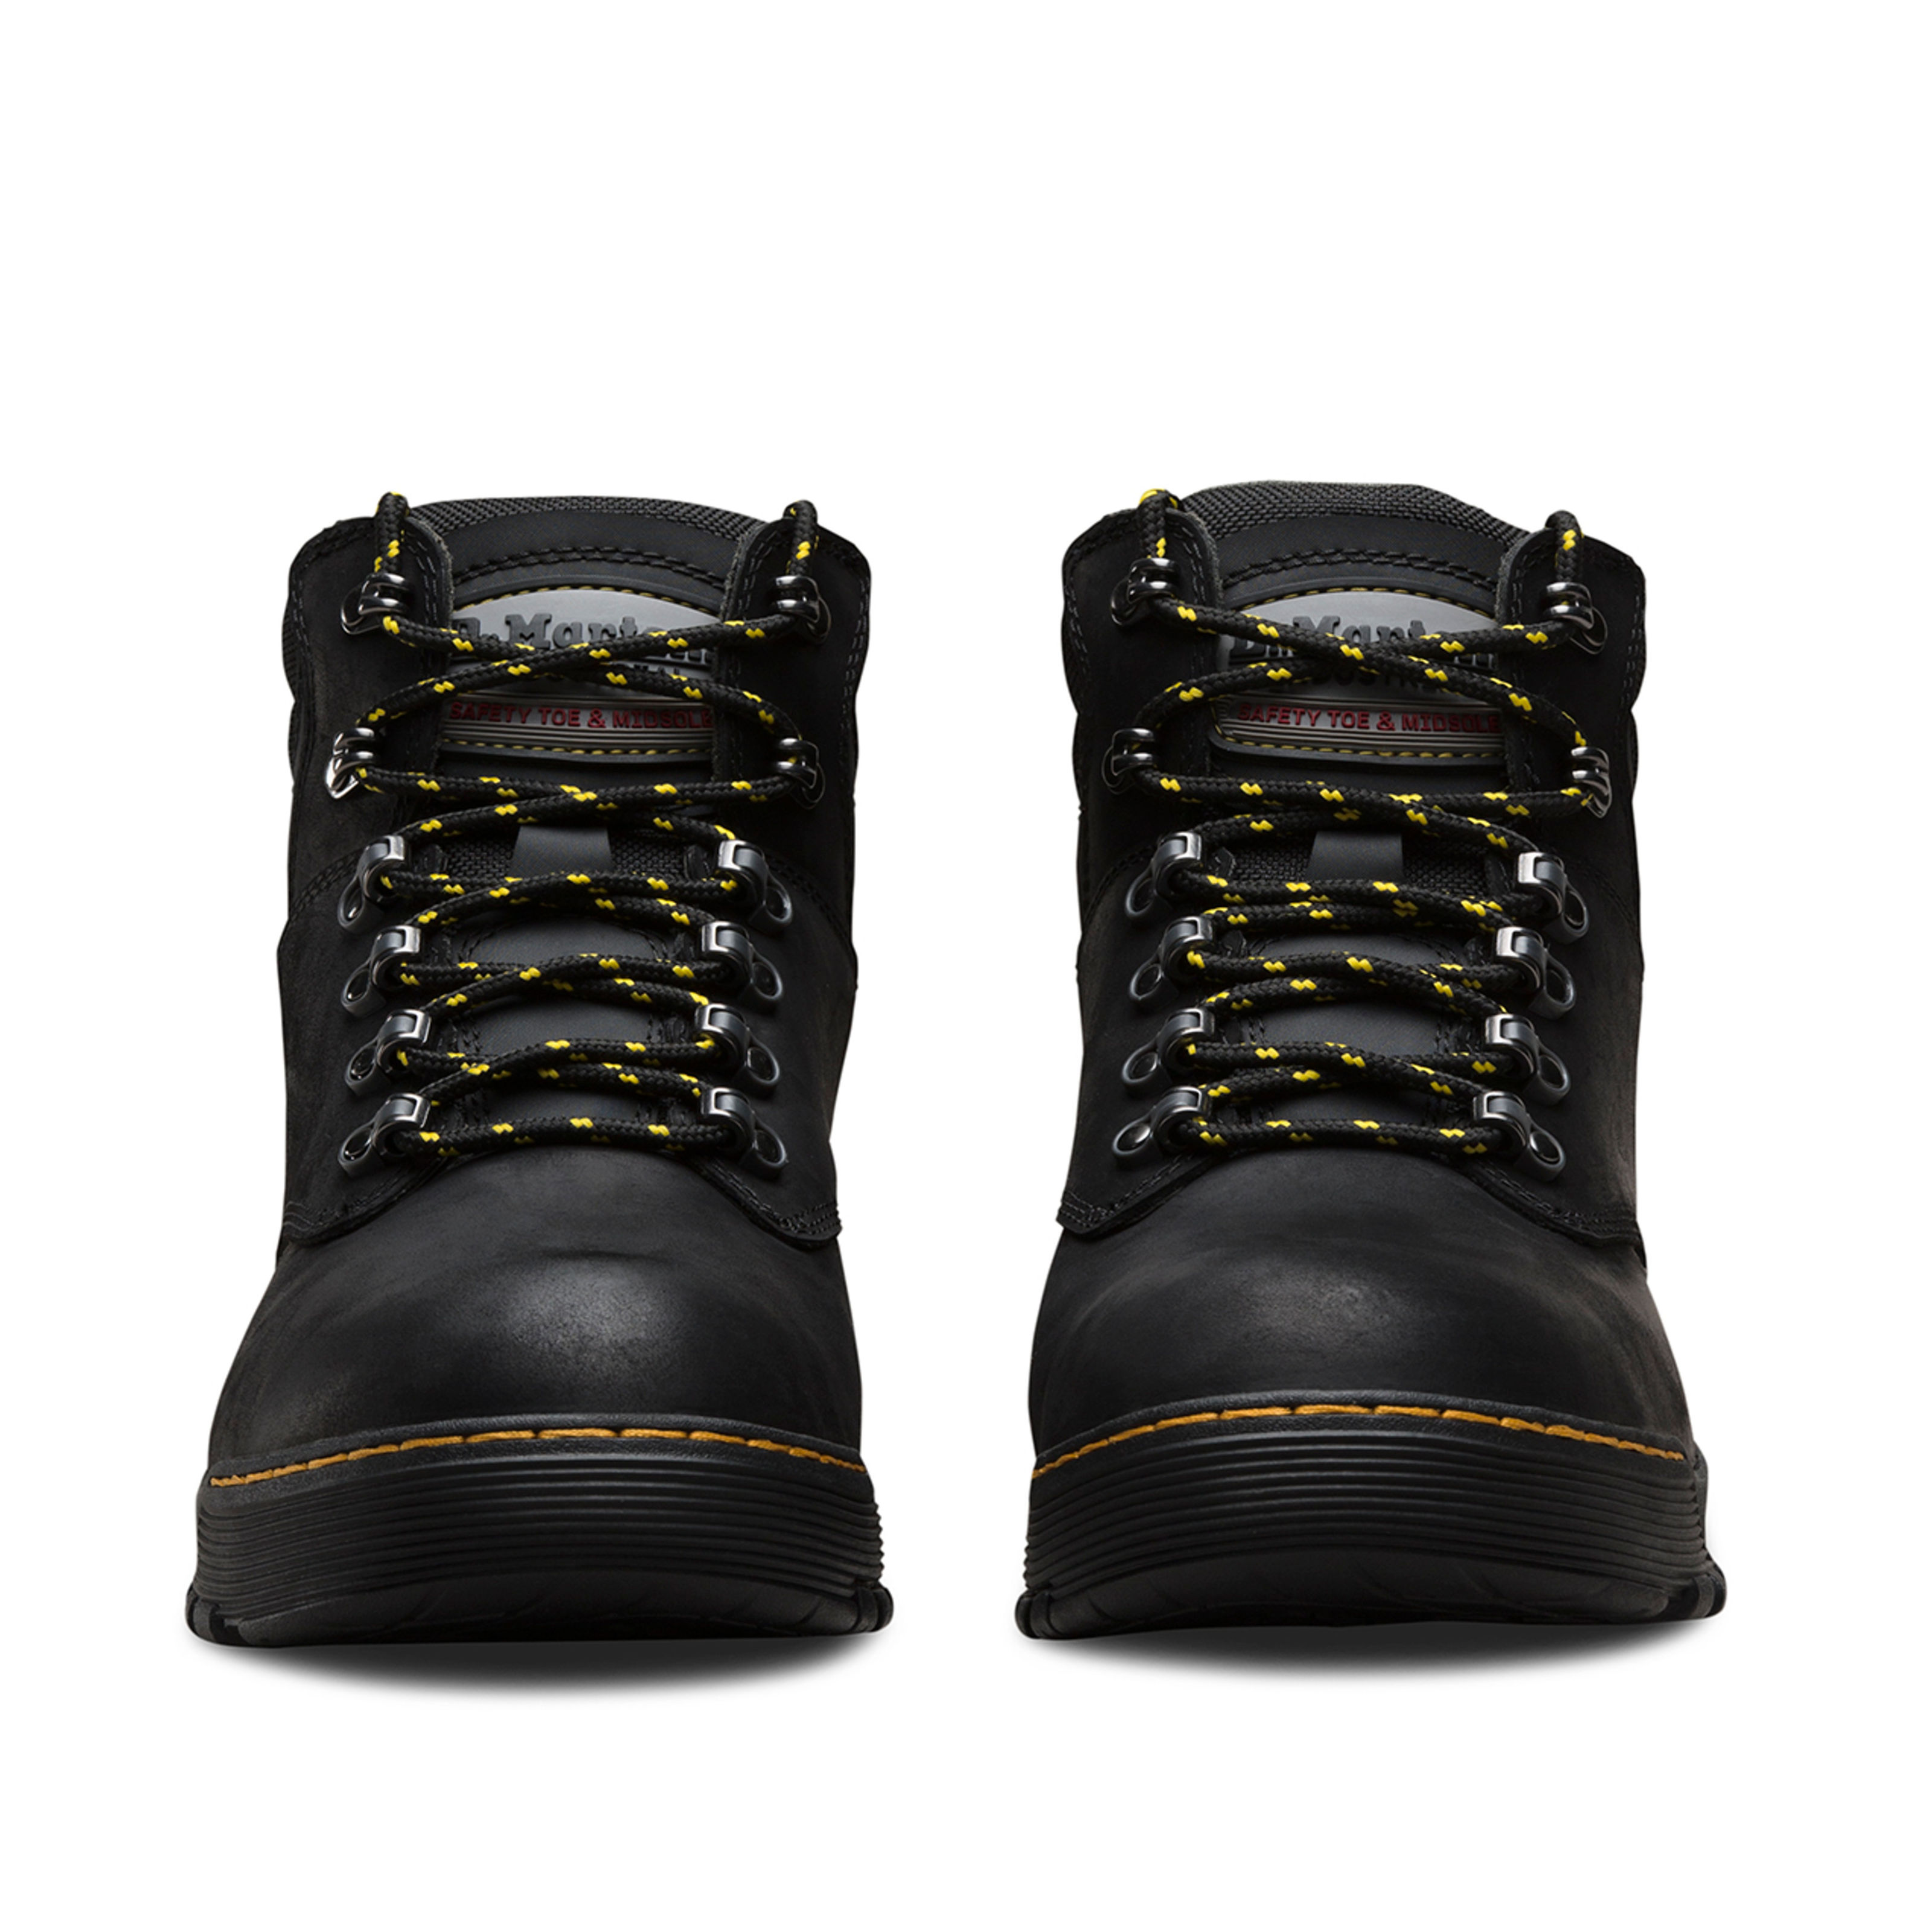 Dr Martens Ridge ST S3 HRO Black Steel Toe Cap Work Safety Boots